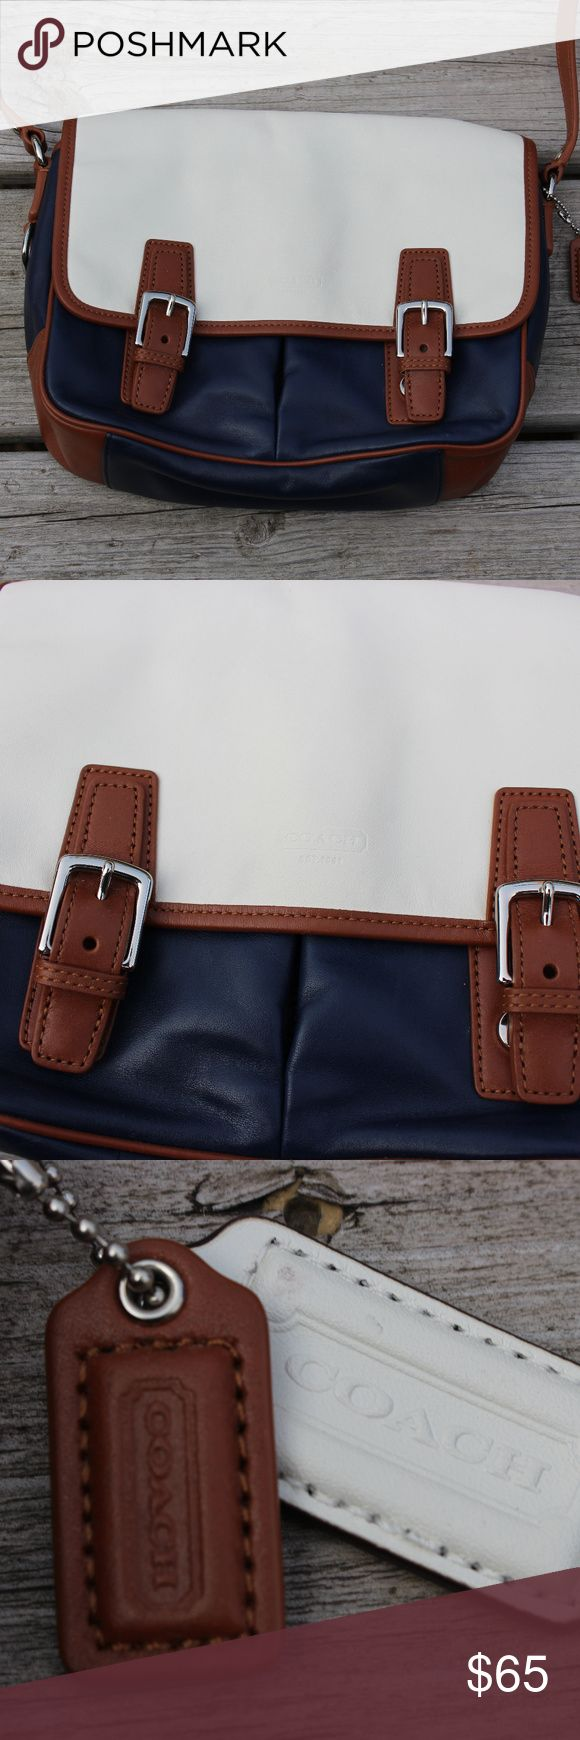 """COACH Navy Blue and White Saddle Bag Blue, brown, and white leather COACH purse. Serial number is F23383.. Strap is 46"""" and the bag is 7"""" by 11"""" Coach Bags Crossbody Bags"""